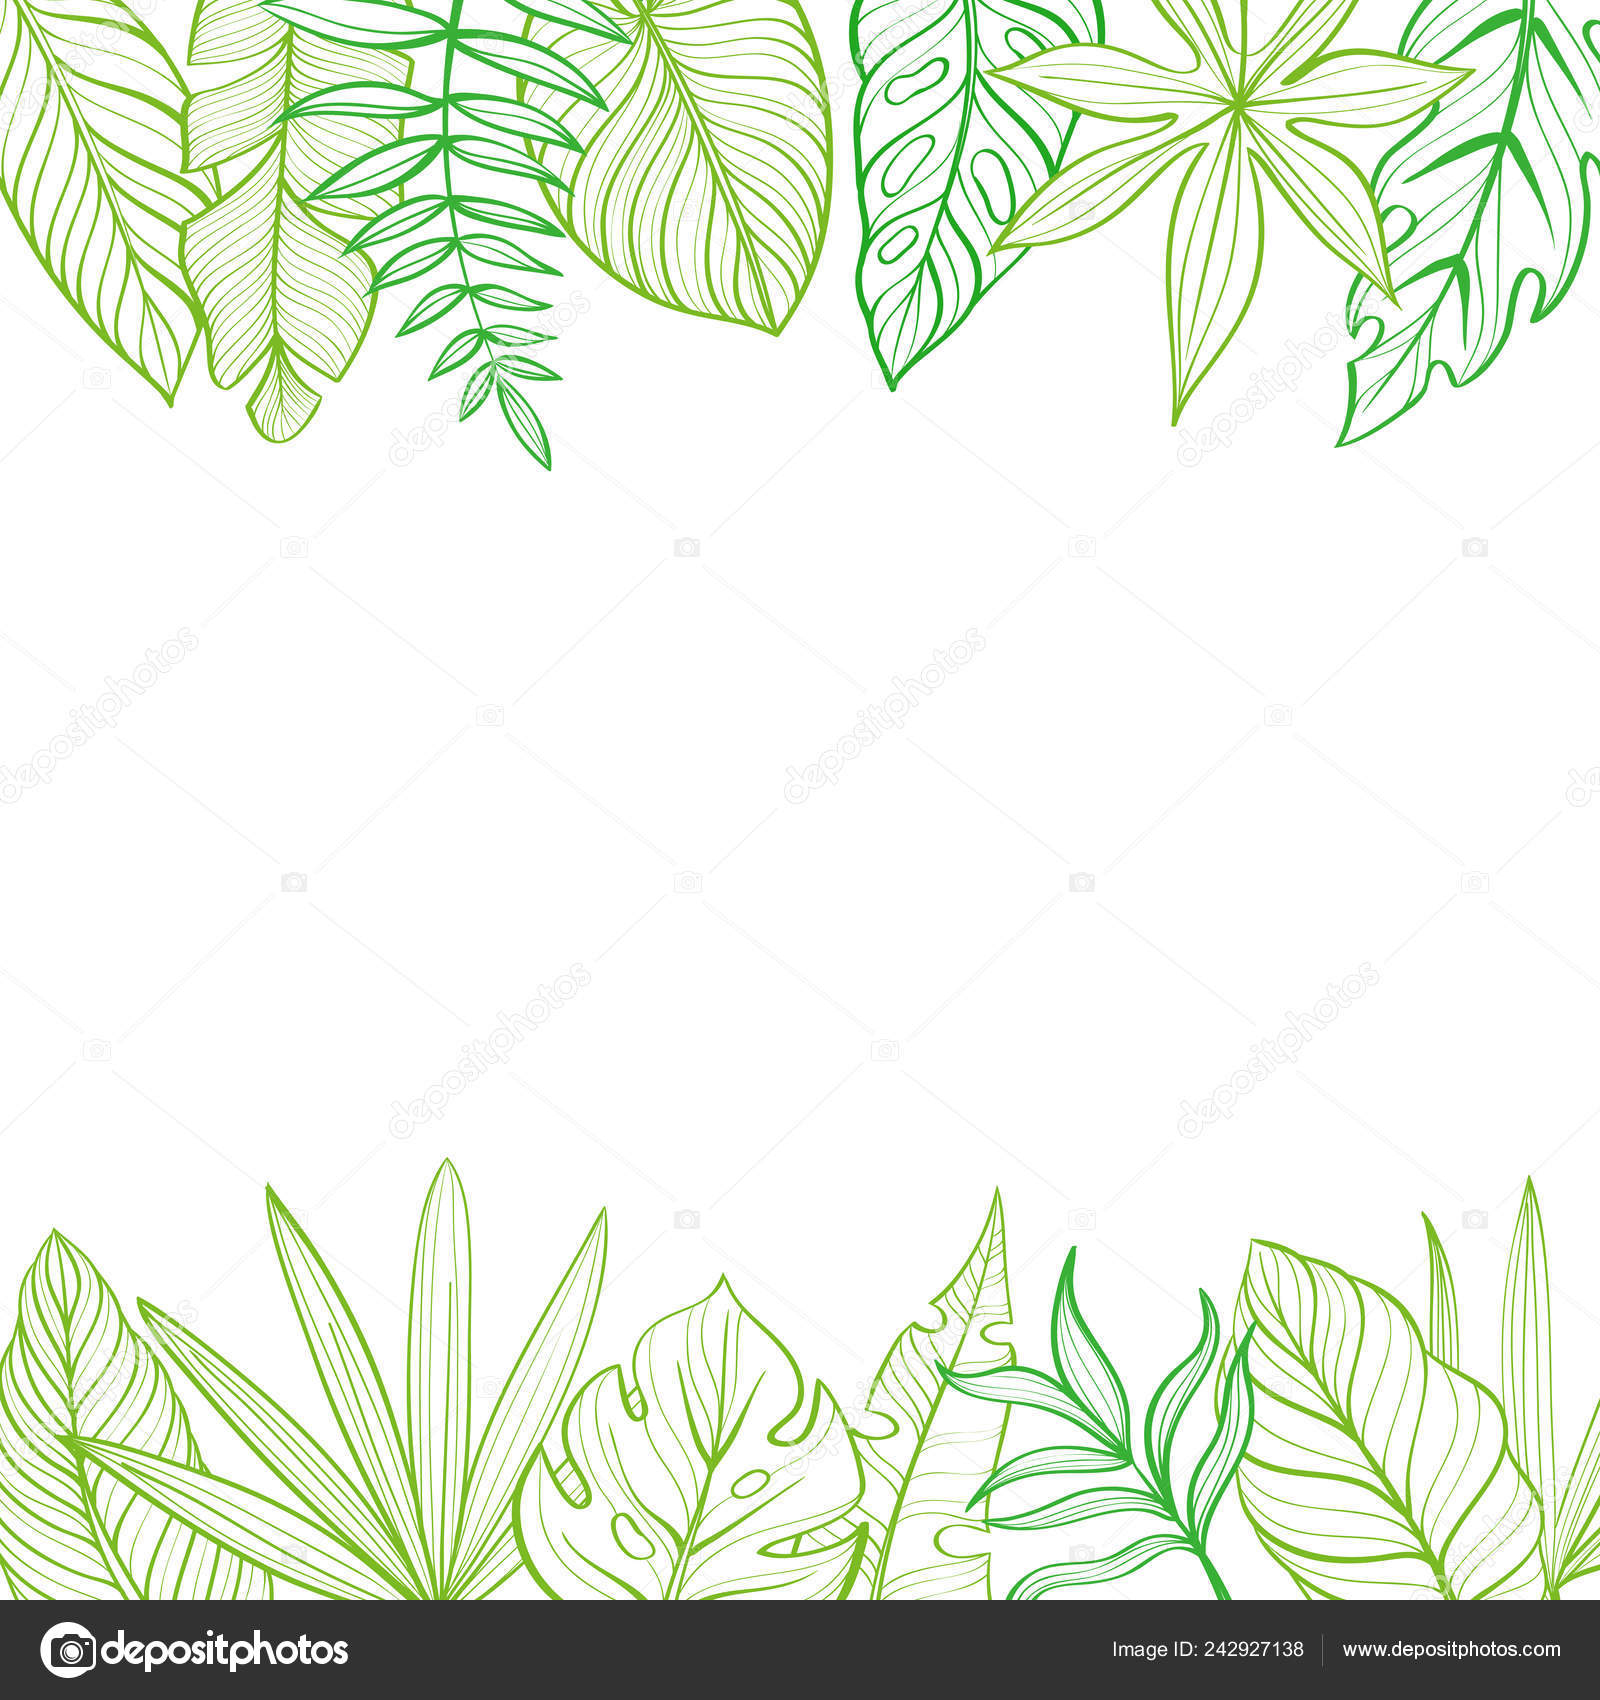 Frame With Tropical Leaves Postcard Hand Drawn Illustration Line Drawing Stock Vector C Elena Al 242927138 Each brush has a resolution of around 2000 pixels, which. frame with tropical leaves postcard hand drawn illustration line drawing stock vector c elena al 242927138